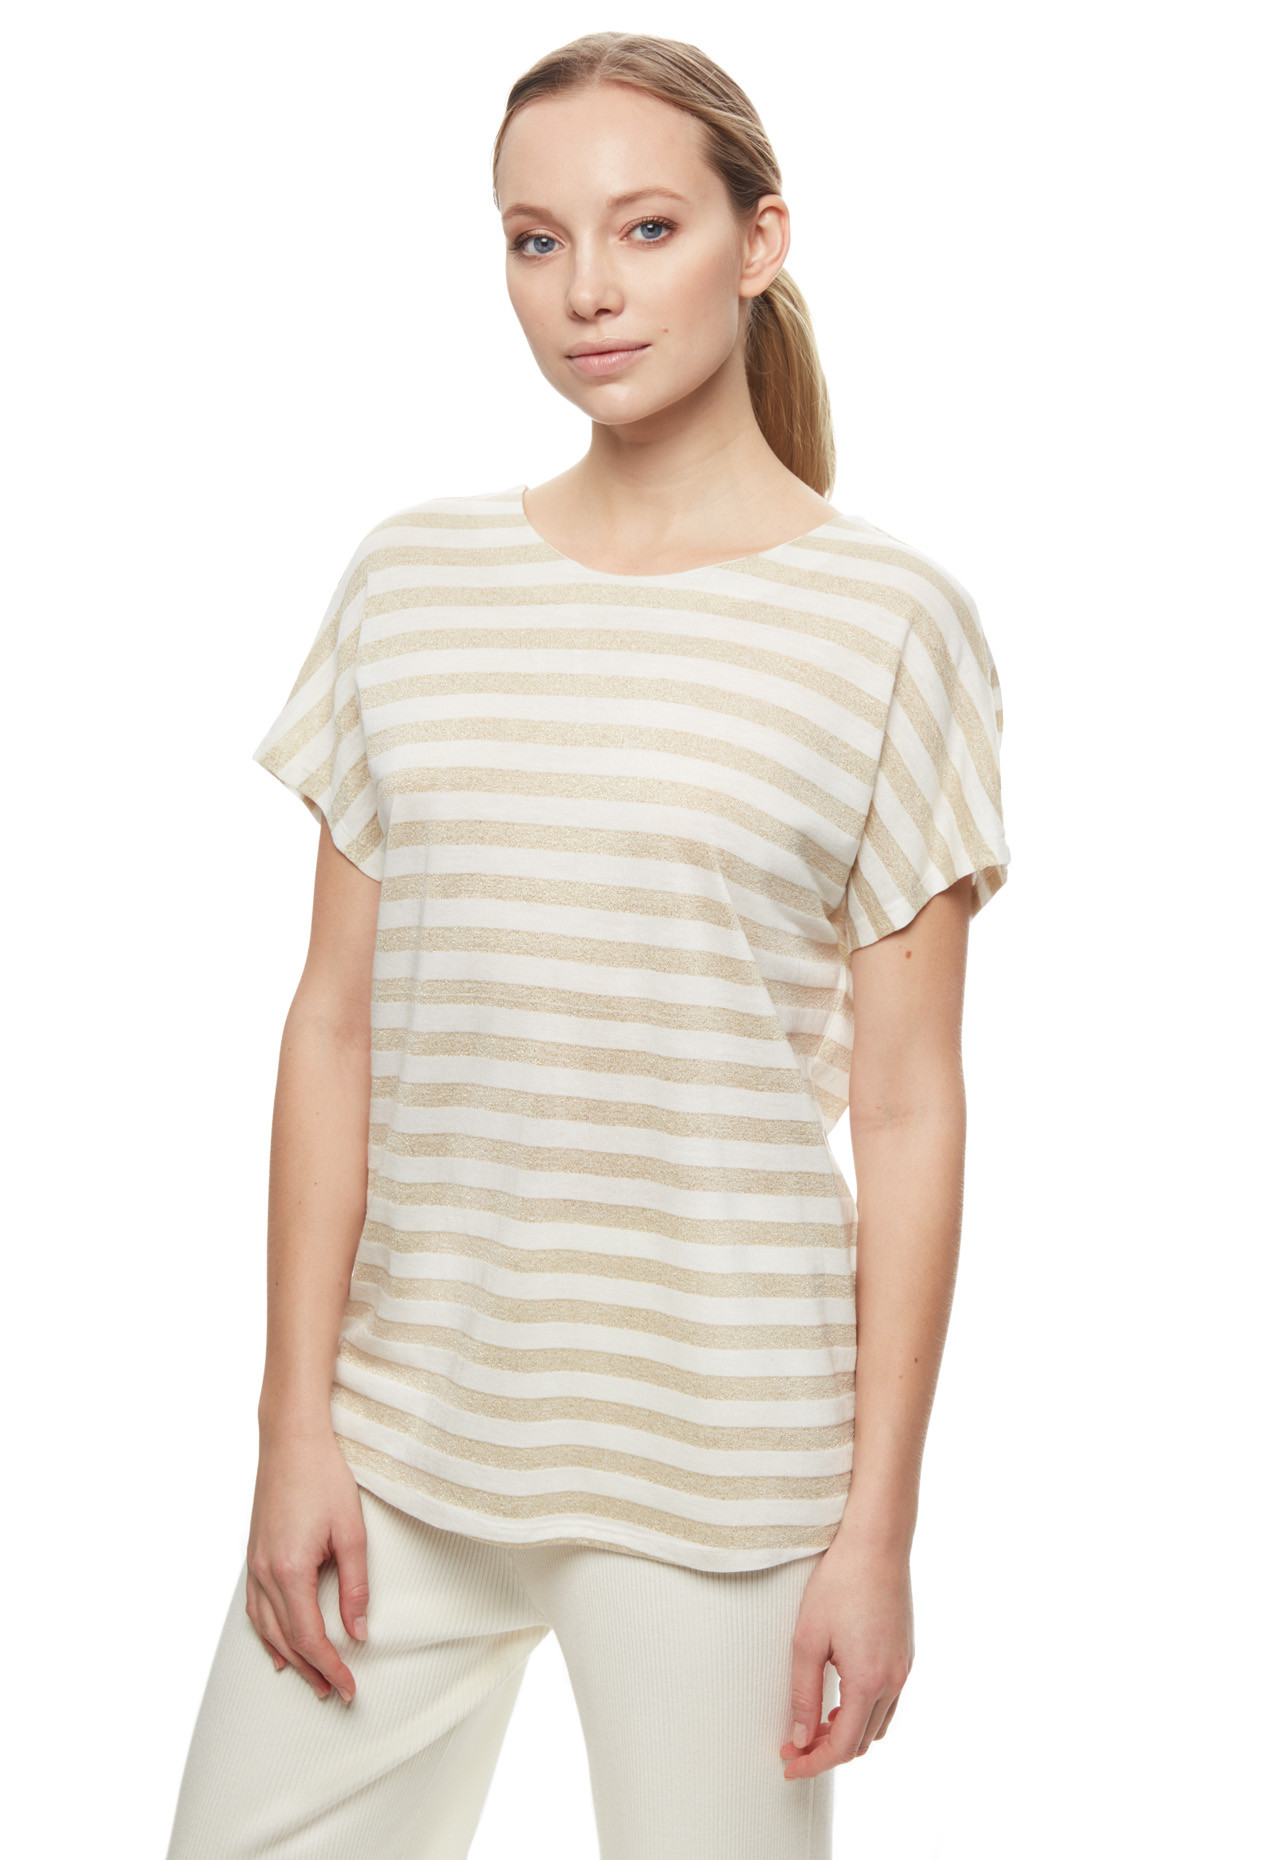 T shirt Stefanel a righe in lurex a 69 euro